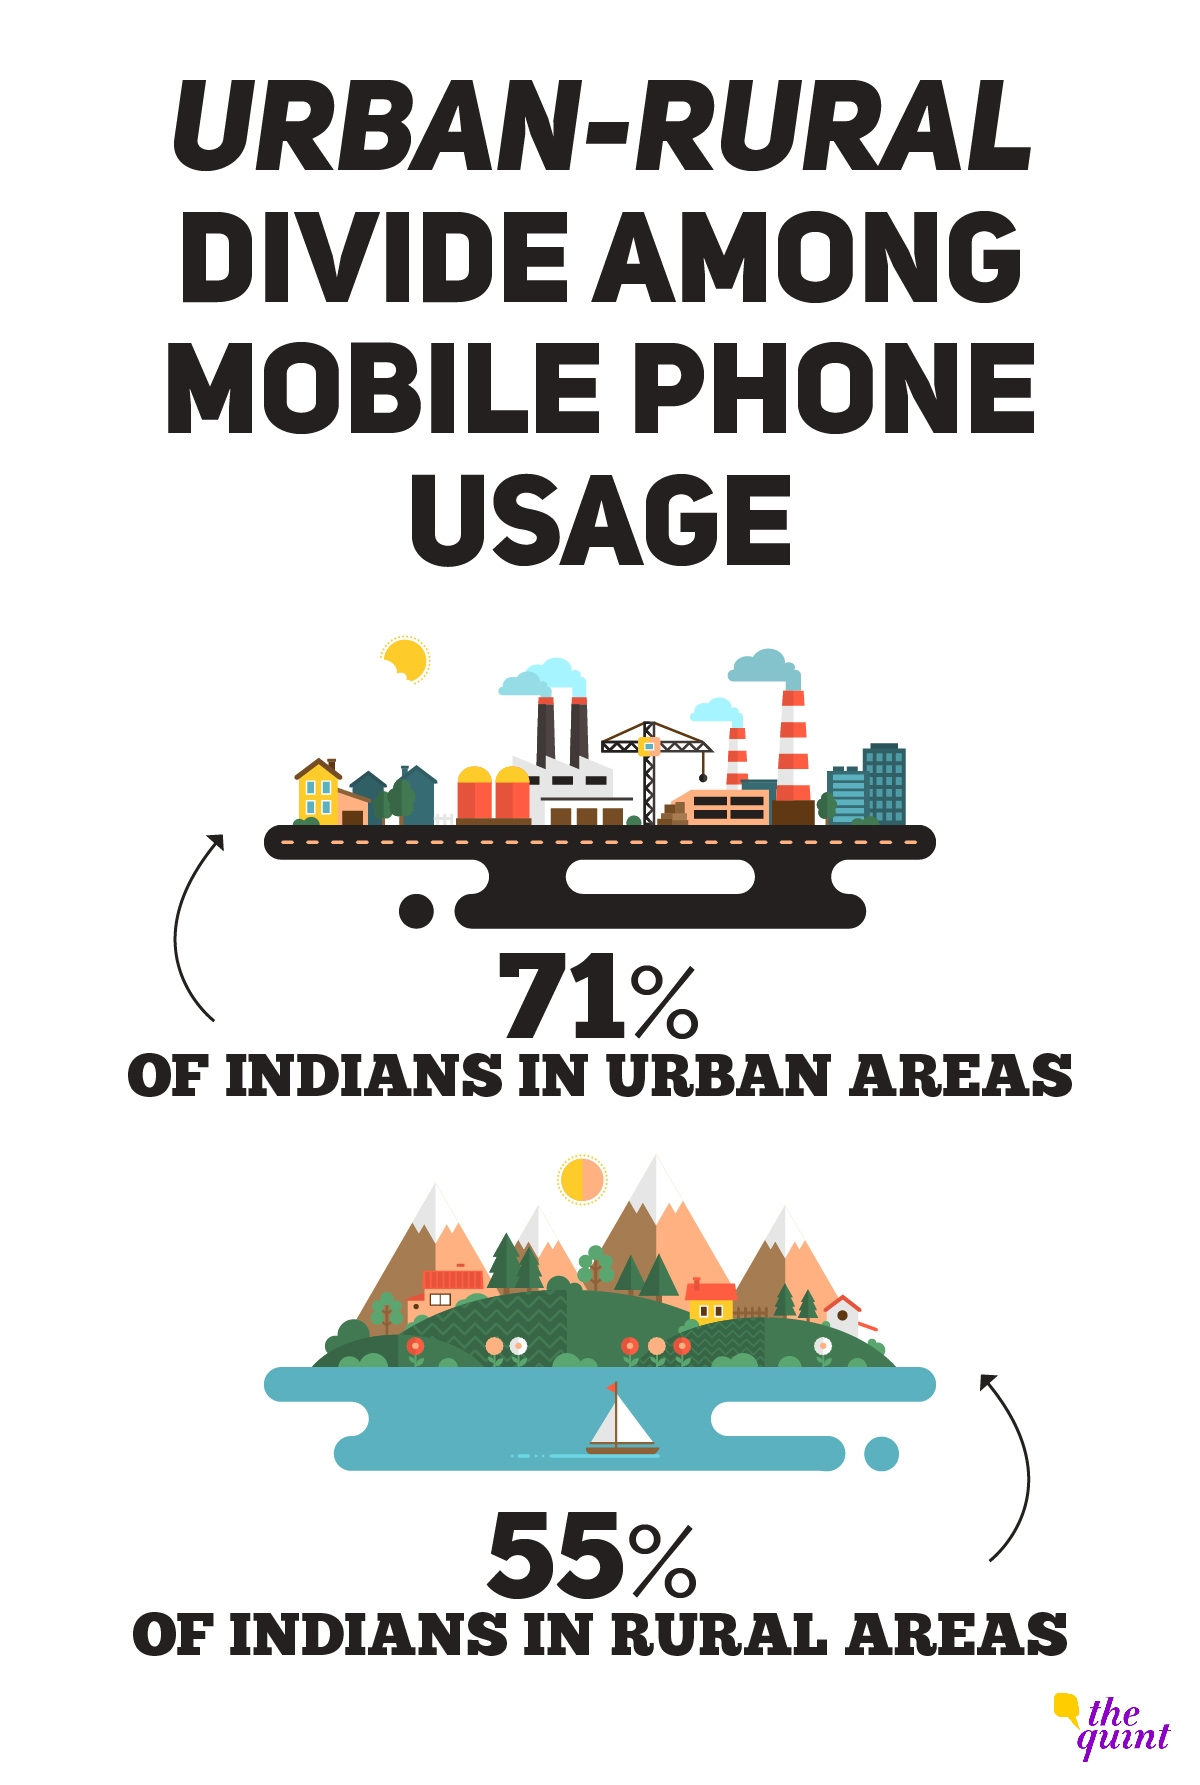 Urban-rural divide in mobile phone usage.